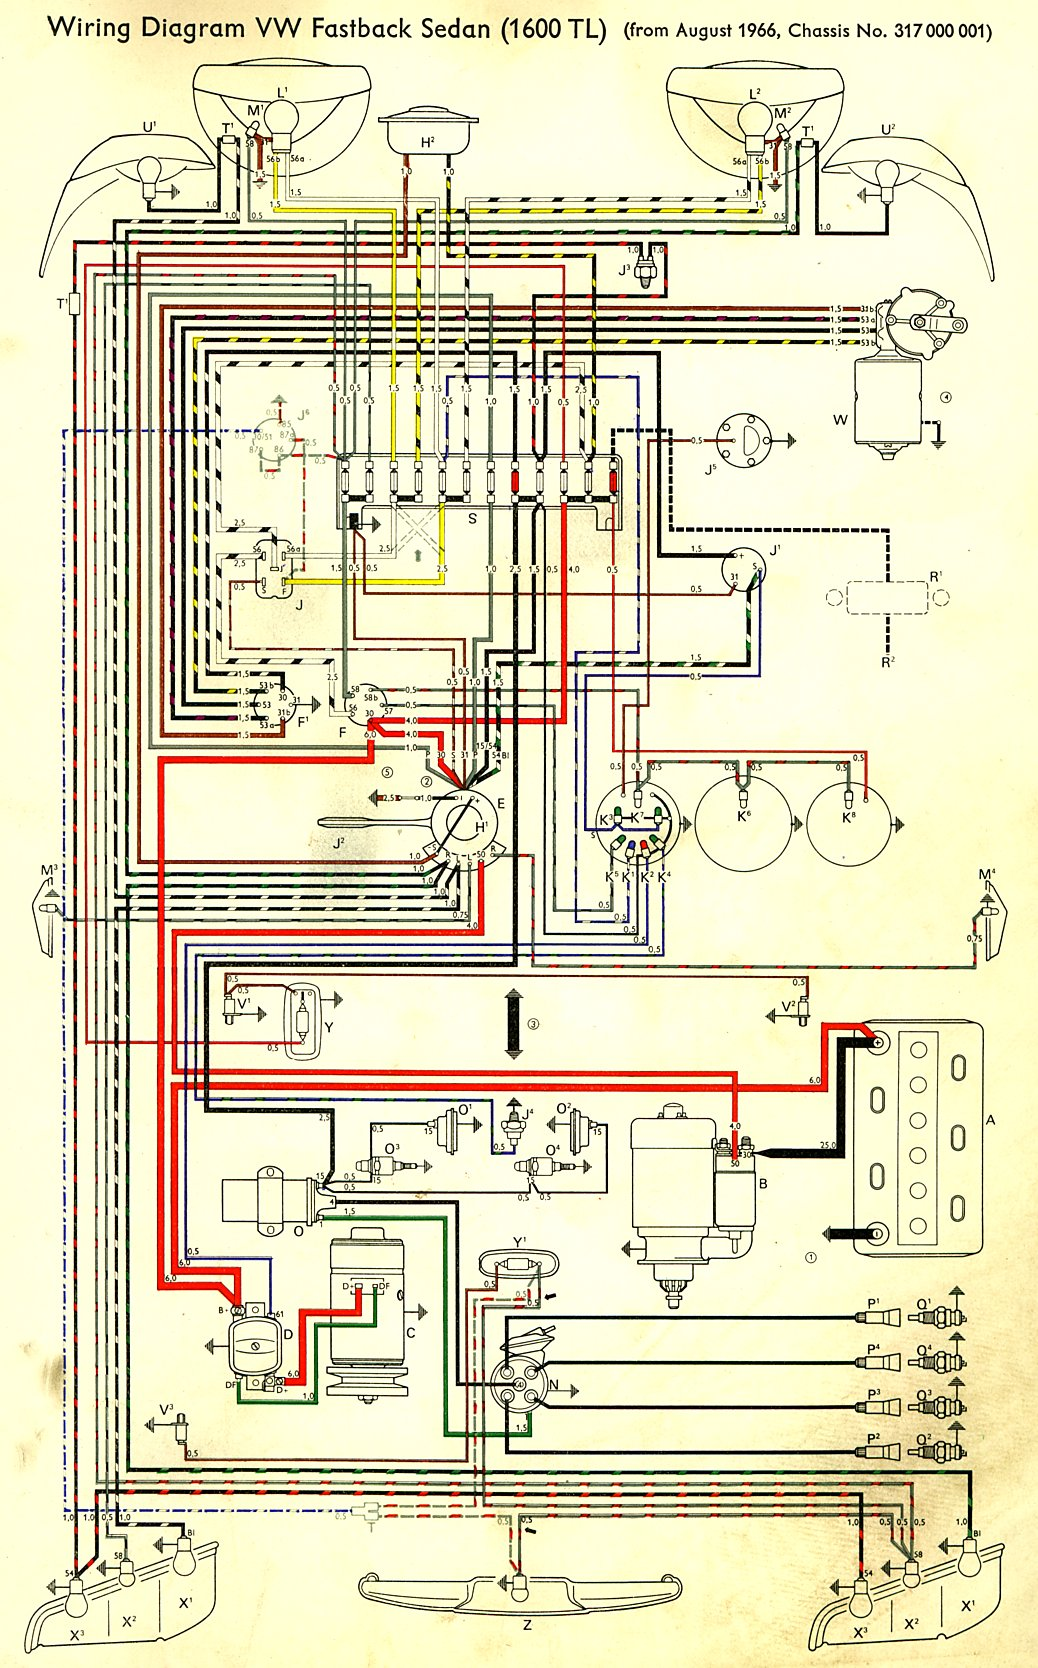 67 Vw Bug Fuse Diagram Wiring Schematic Schematics Diagrams 1973 Super Beetle 1971 69 Residential Electrical Symbols U2022 Rh Bookmyad Co 1974 Electronic Ignition